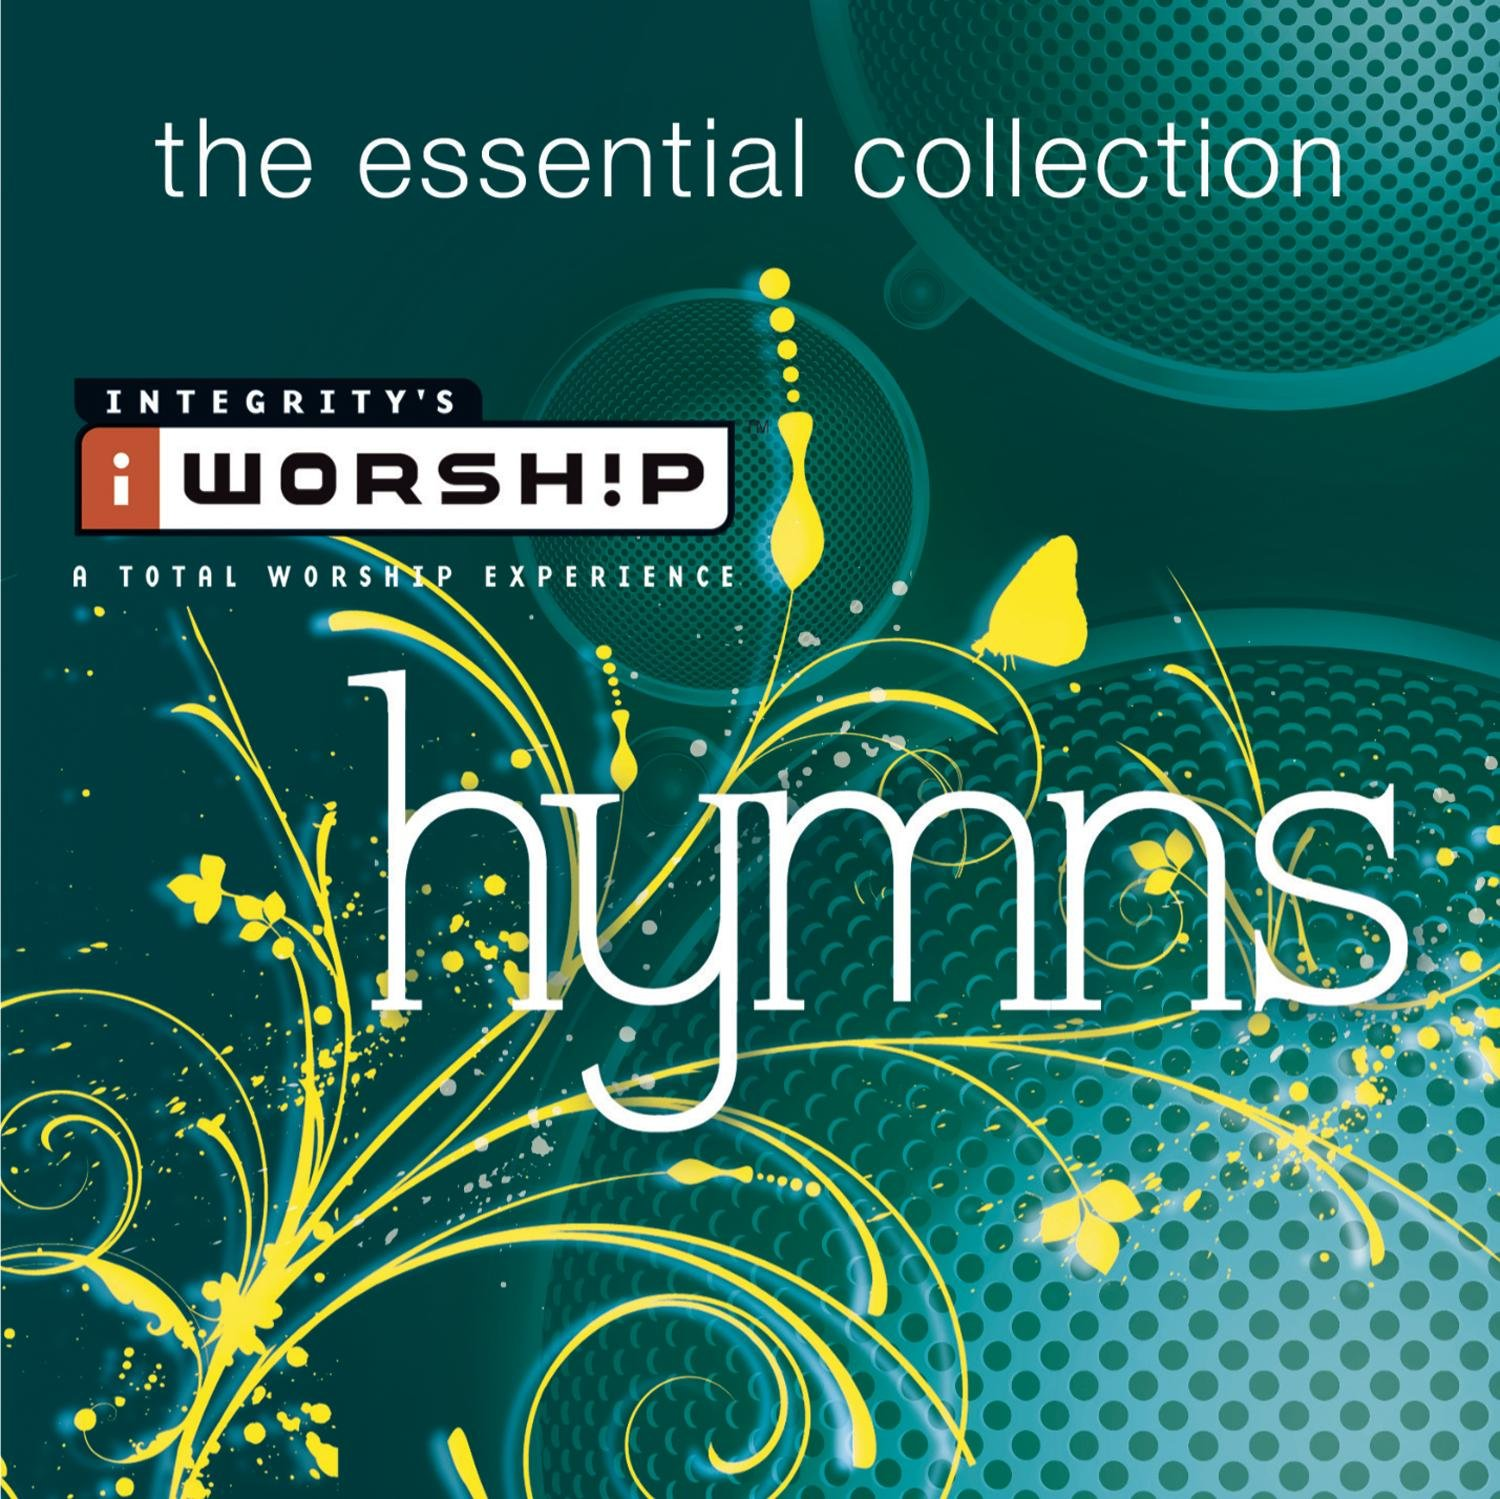 Iworship Hymns: The Essential Collection (Sba1)                                                                                                                                                                                                                                                    <span class=